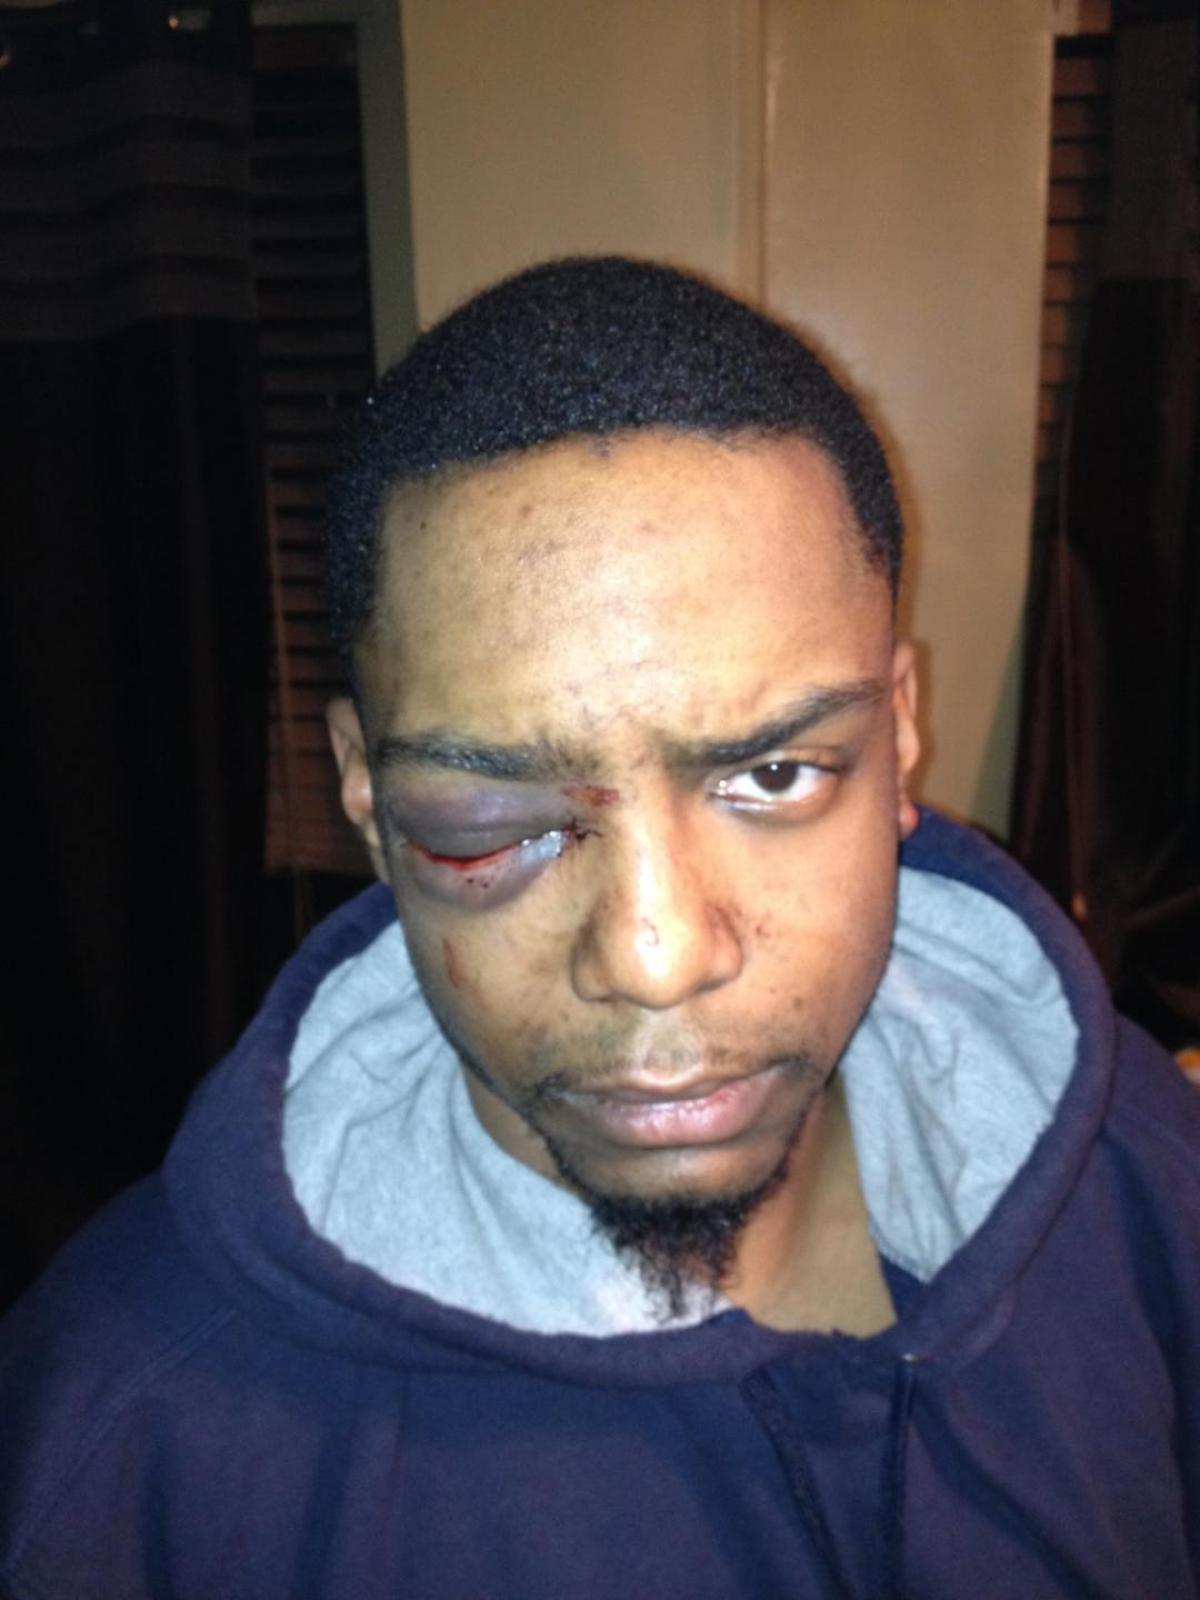 C:\NUCDaily\Images\proj5\DNA evidence links Orthodox Jewish man to vicious beating of gay black man.png